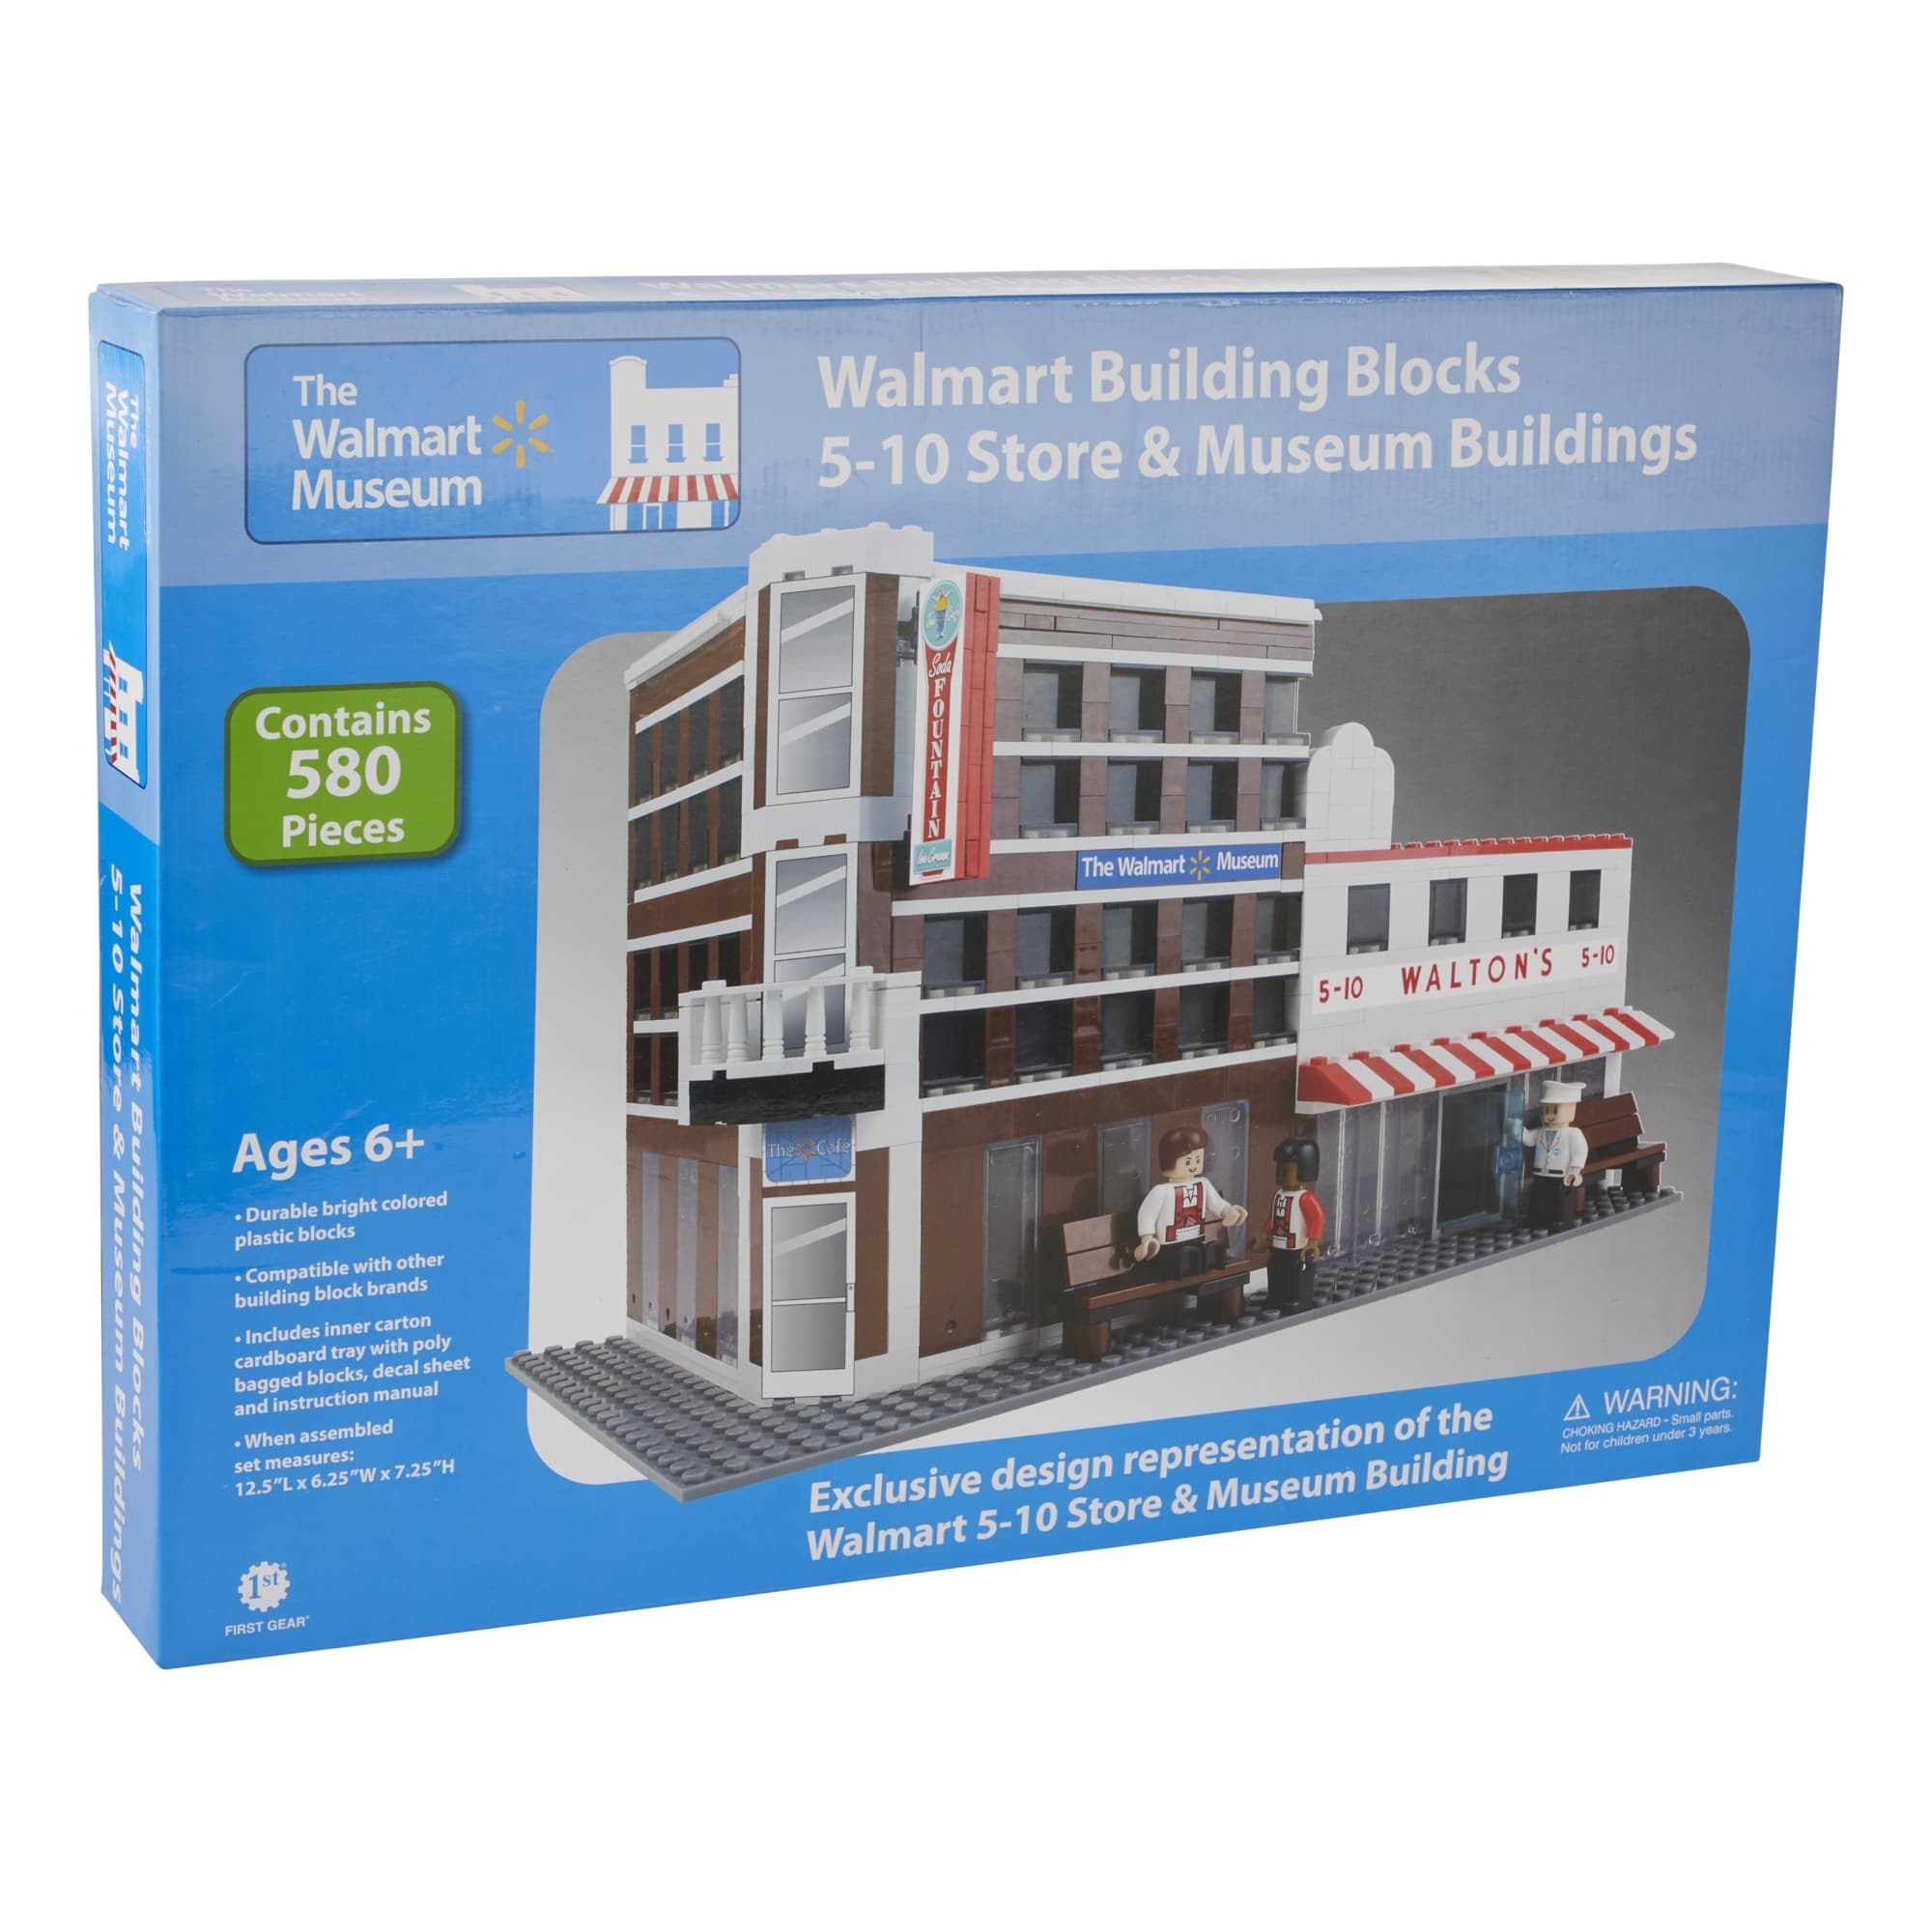 Walmart Building Blocks 5-10 Store & Museum Buildings